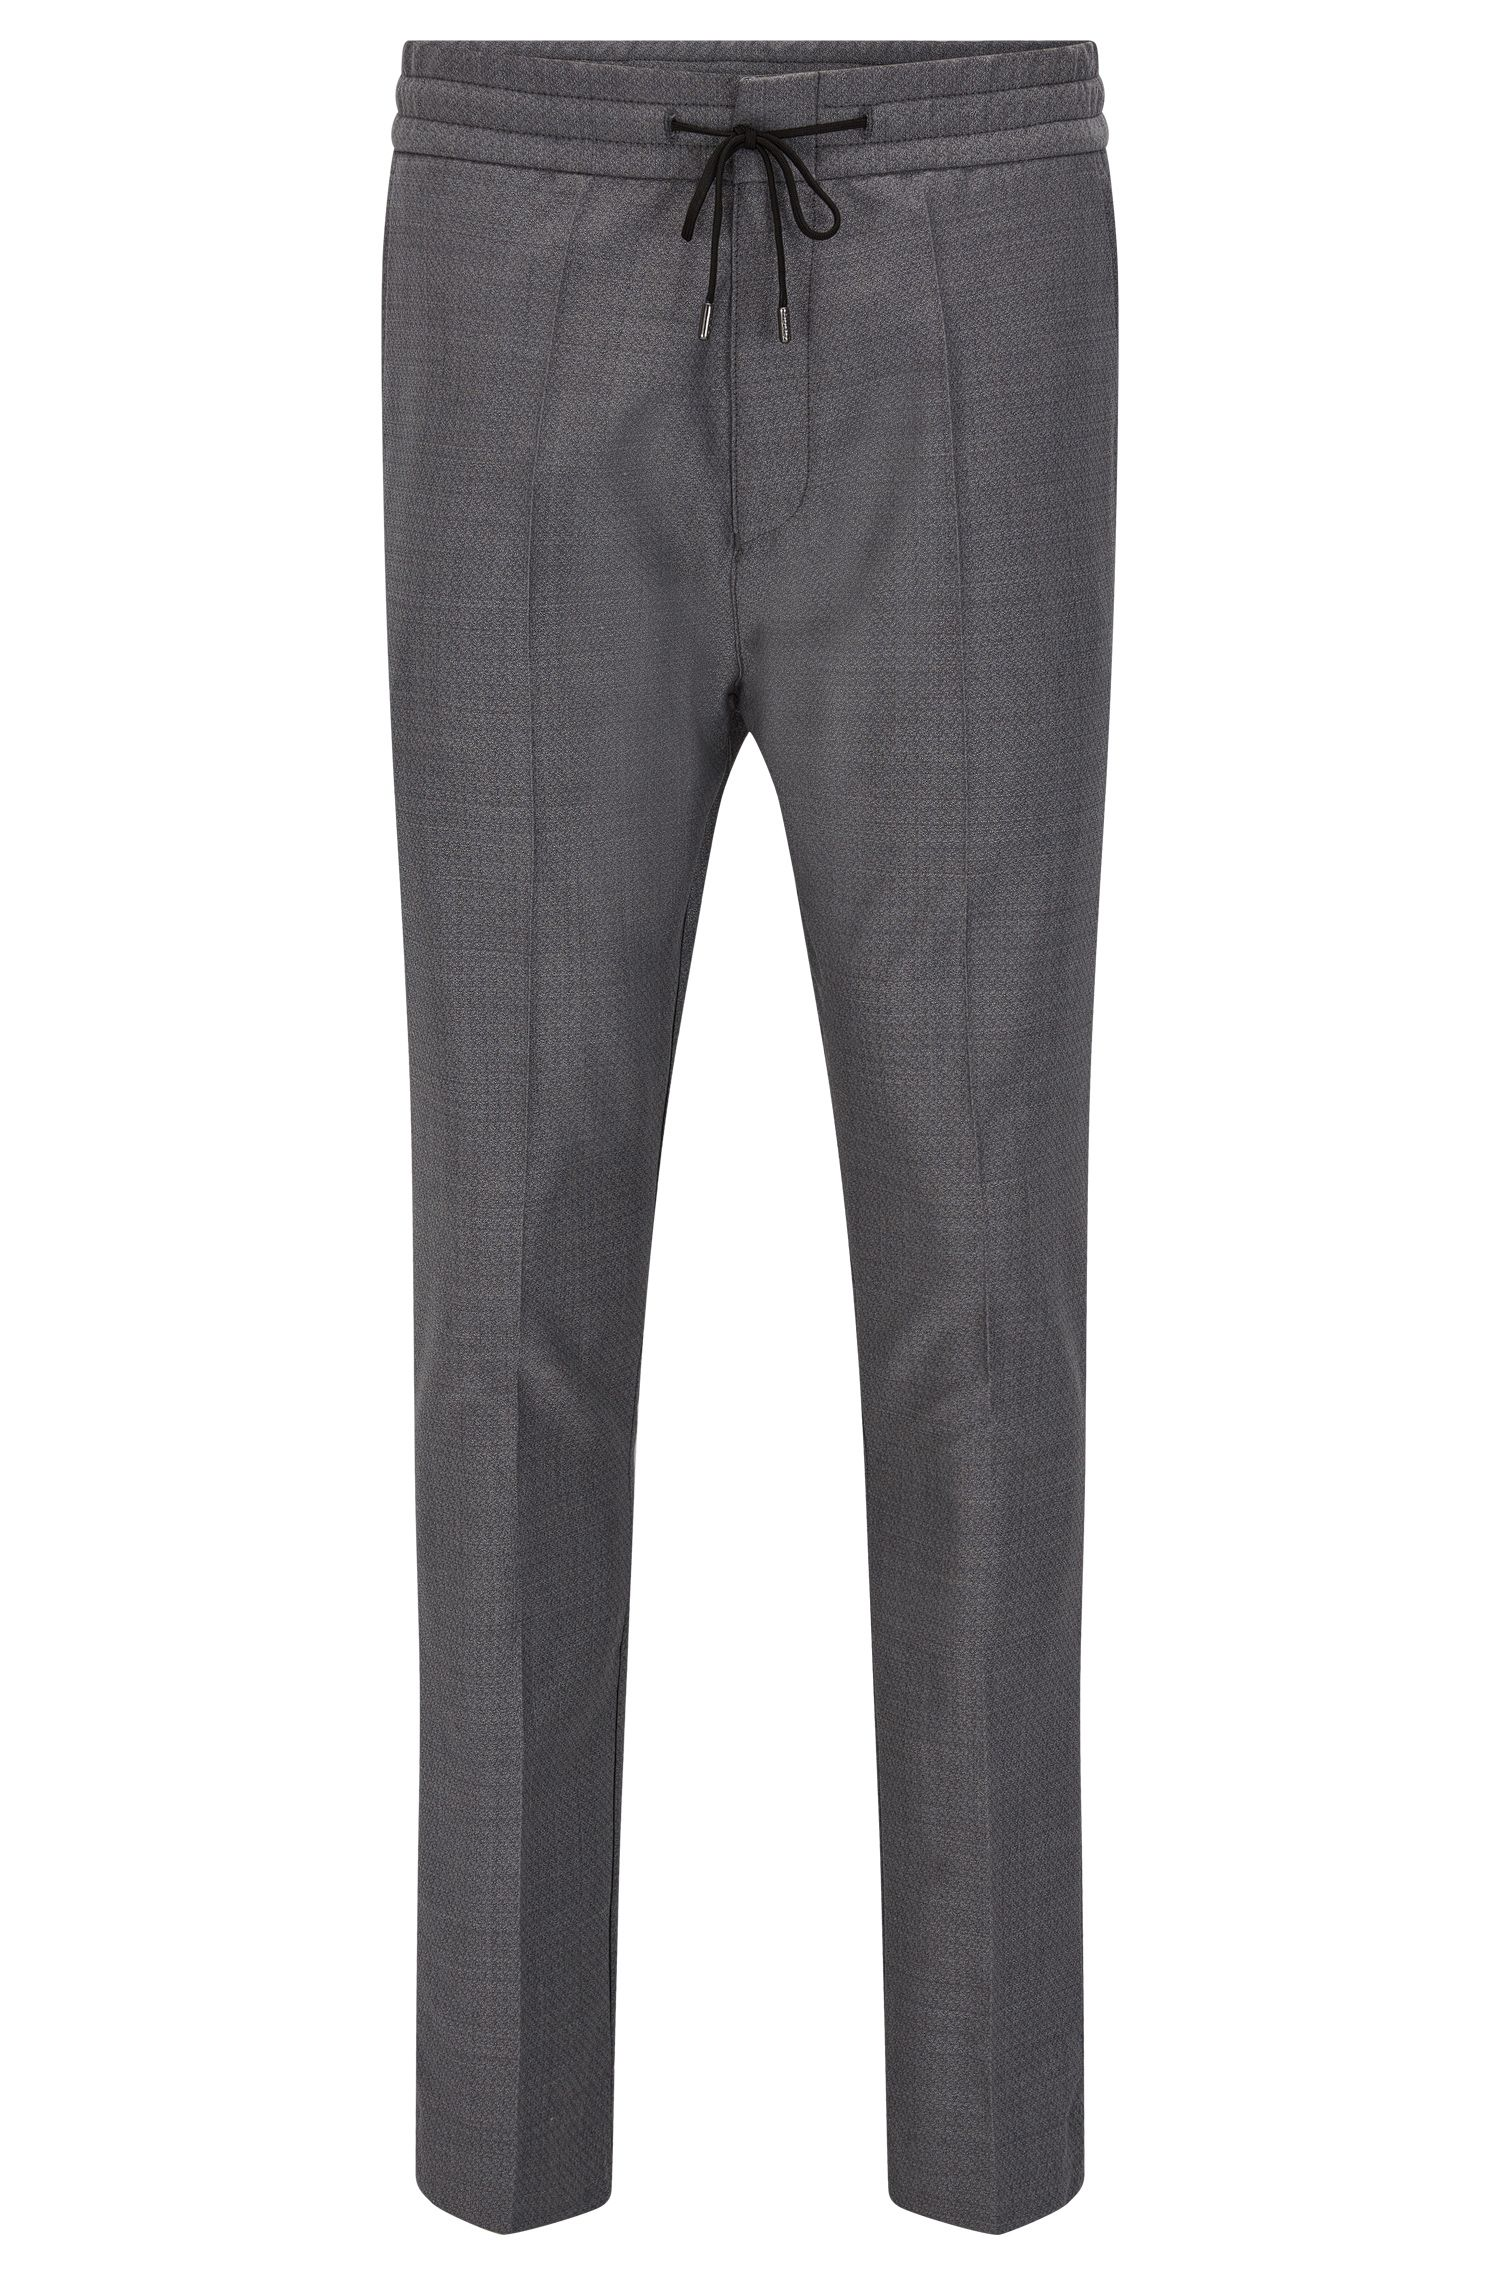 Virgin Wool Pant, Tapered Fit | Himesh